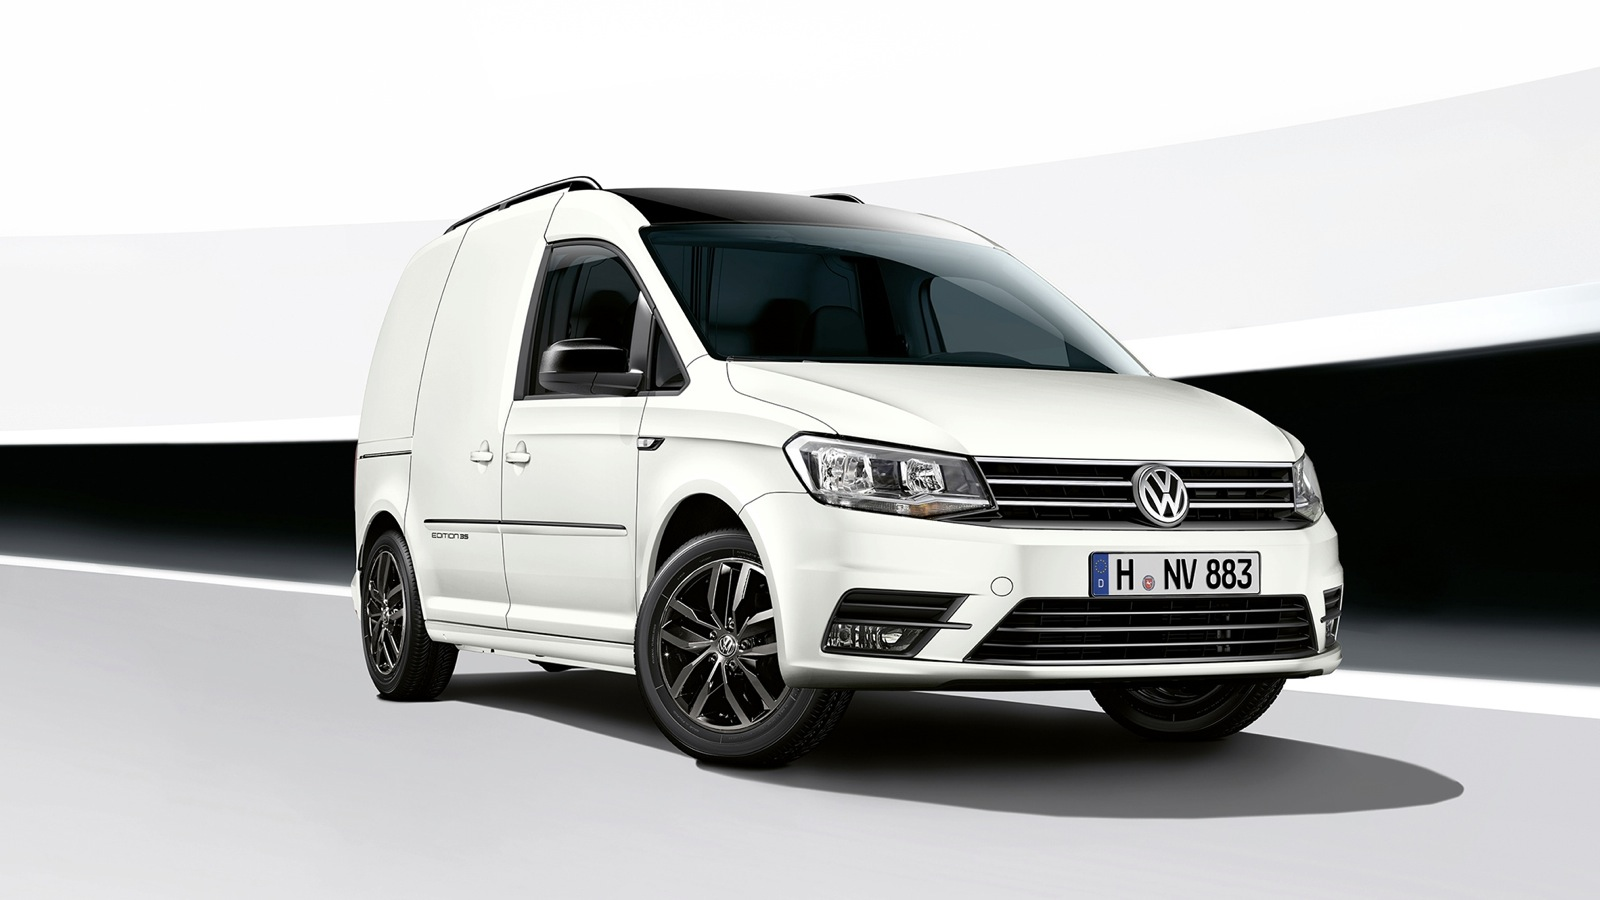 2017 volkswagen caddy edition 35 unveiled photos 1 of 2. Black Bedroom Furniture Sets. Home Design Ideas